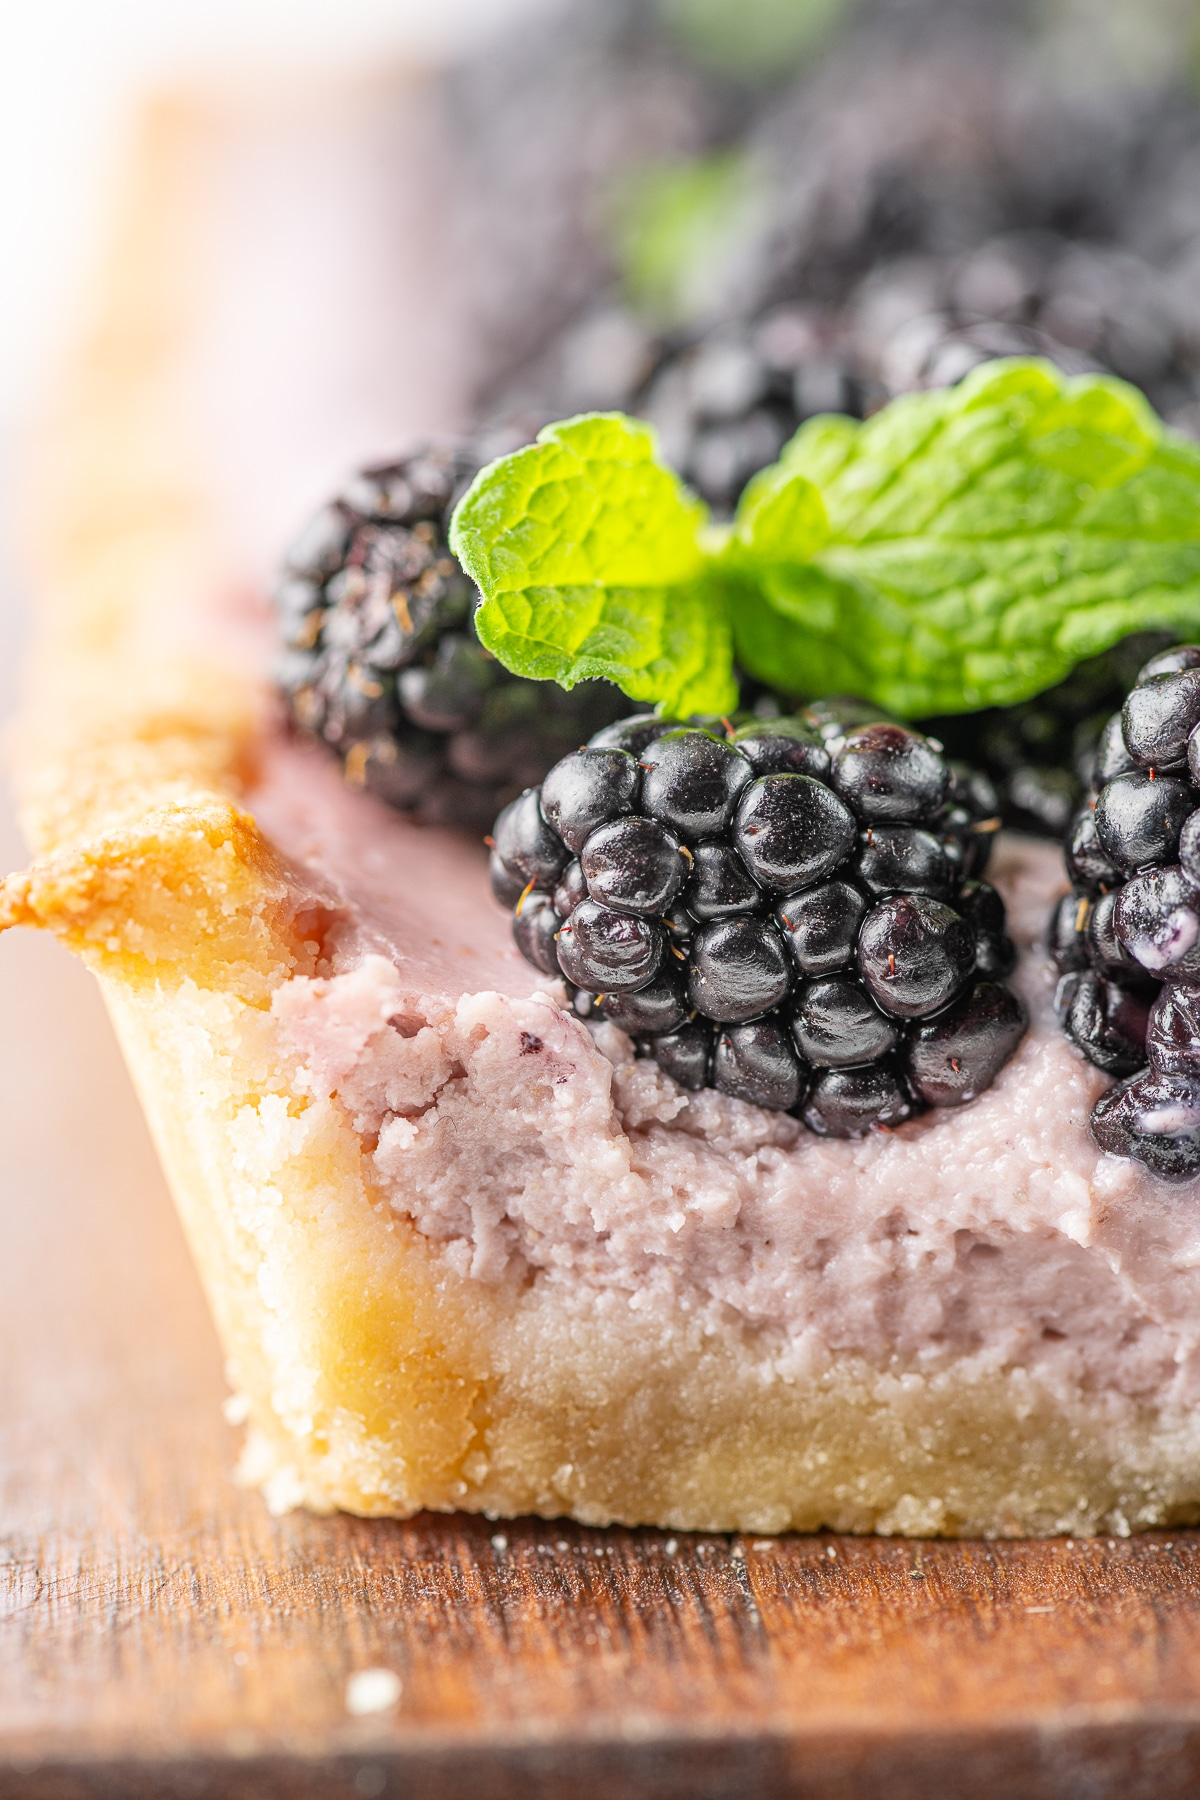 Extreme close of the edge of a slice of blackberry tart on a rustic wooden cutting board